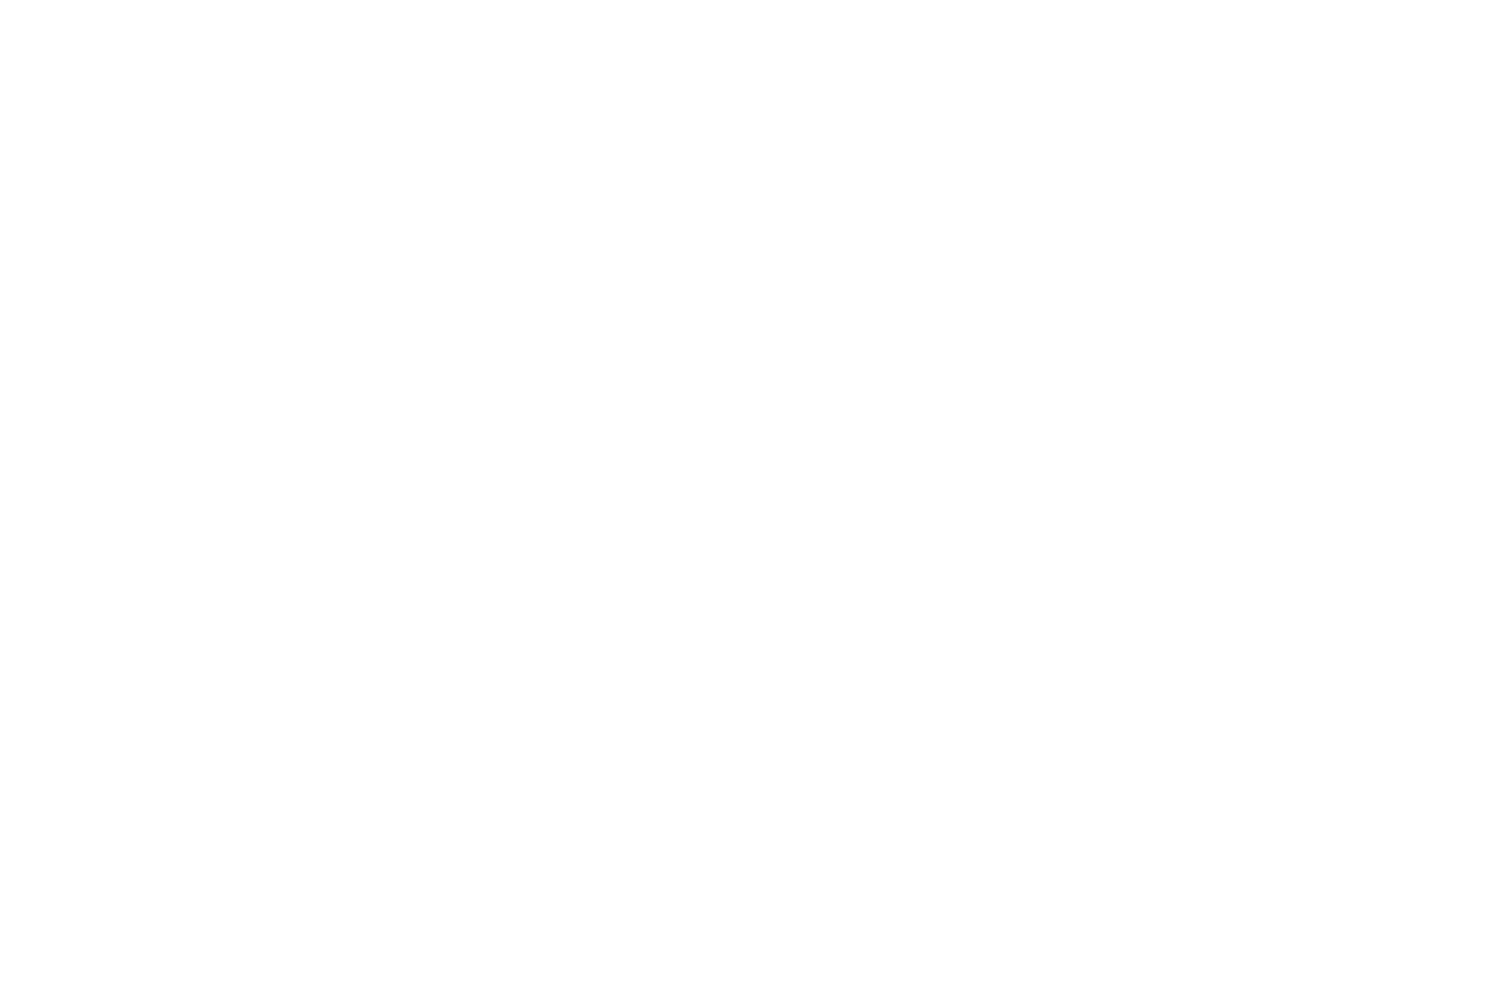 Bluestone Asset Management